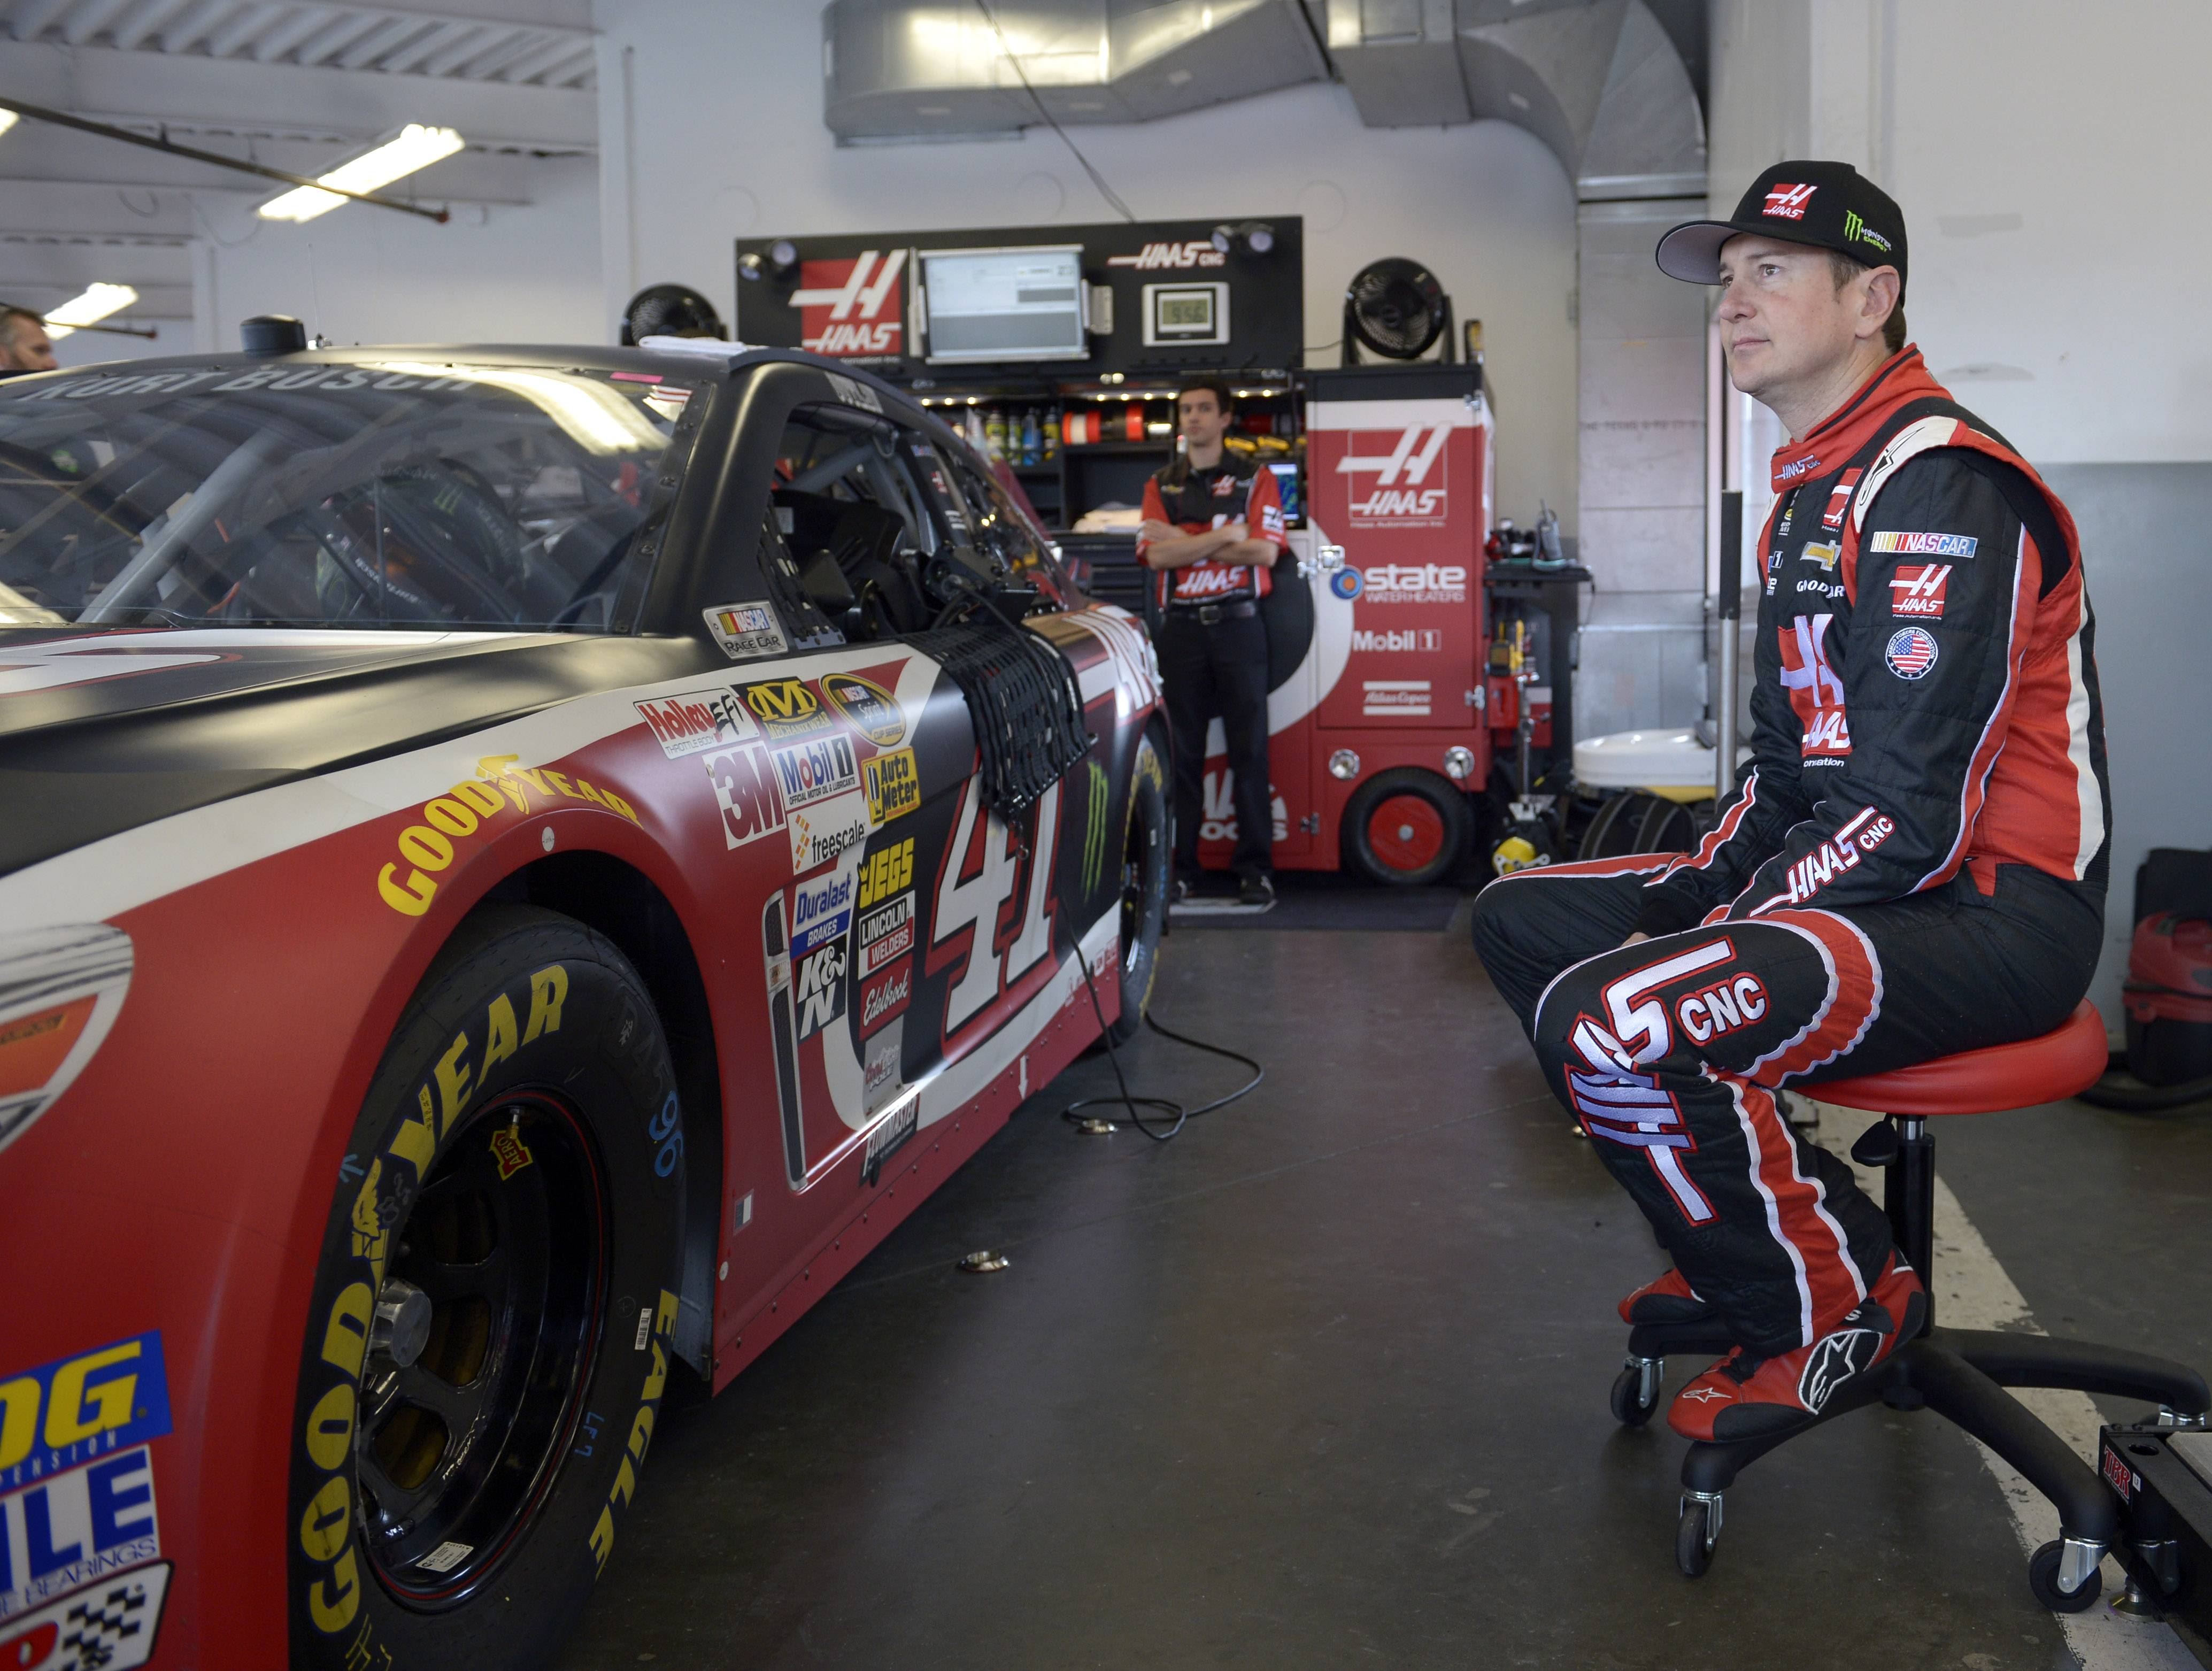 Kurt Busch sits by his car before practice for Sunday's NASCAR Daytona 500 Sprint Cup series auto race at Daytona International Speedway in Daytona Beach, Fla., Saturday.